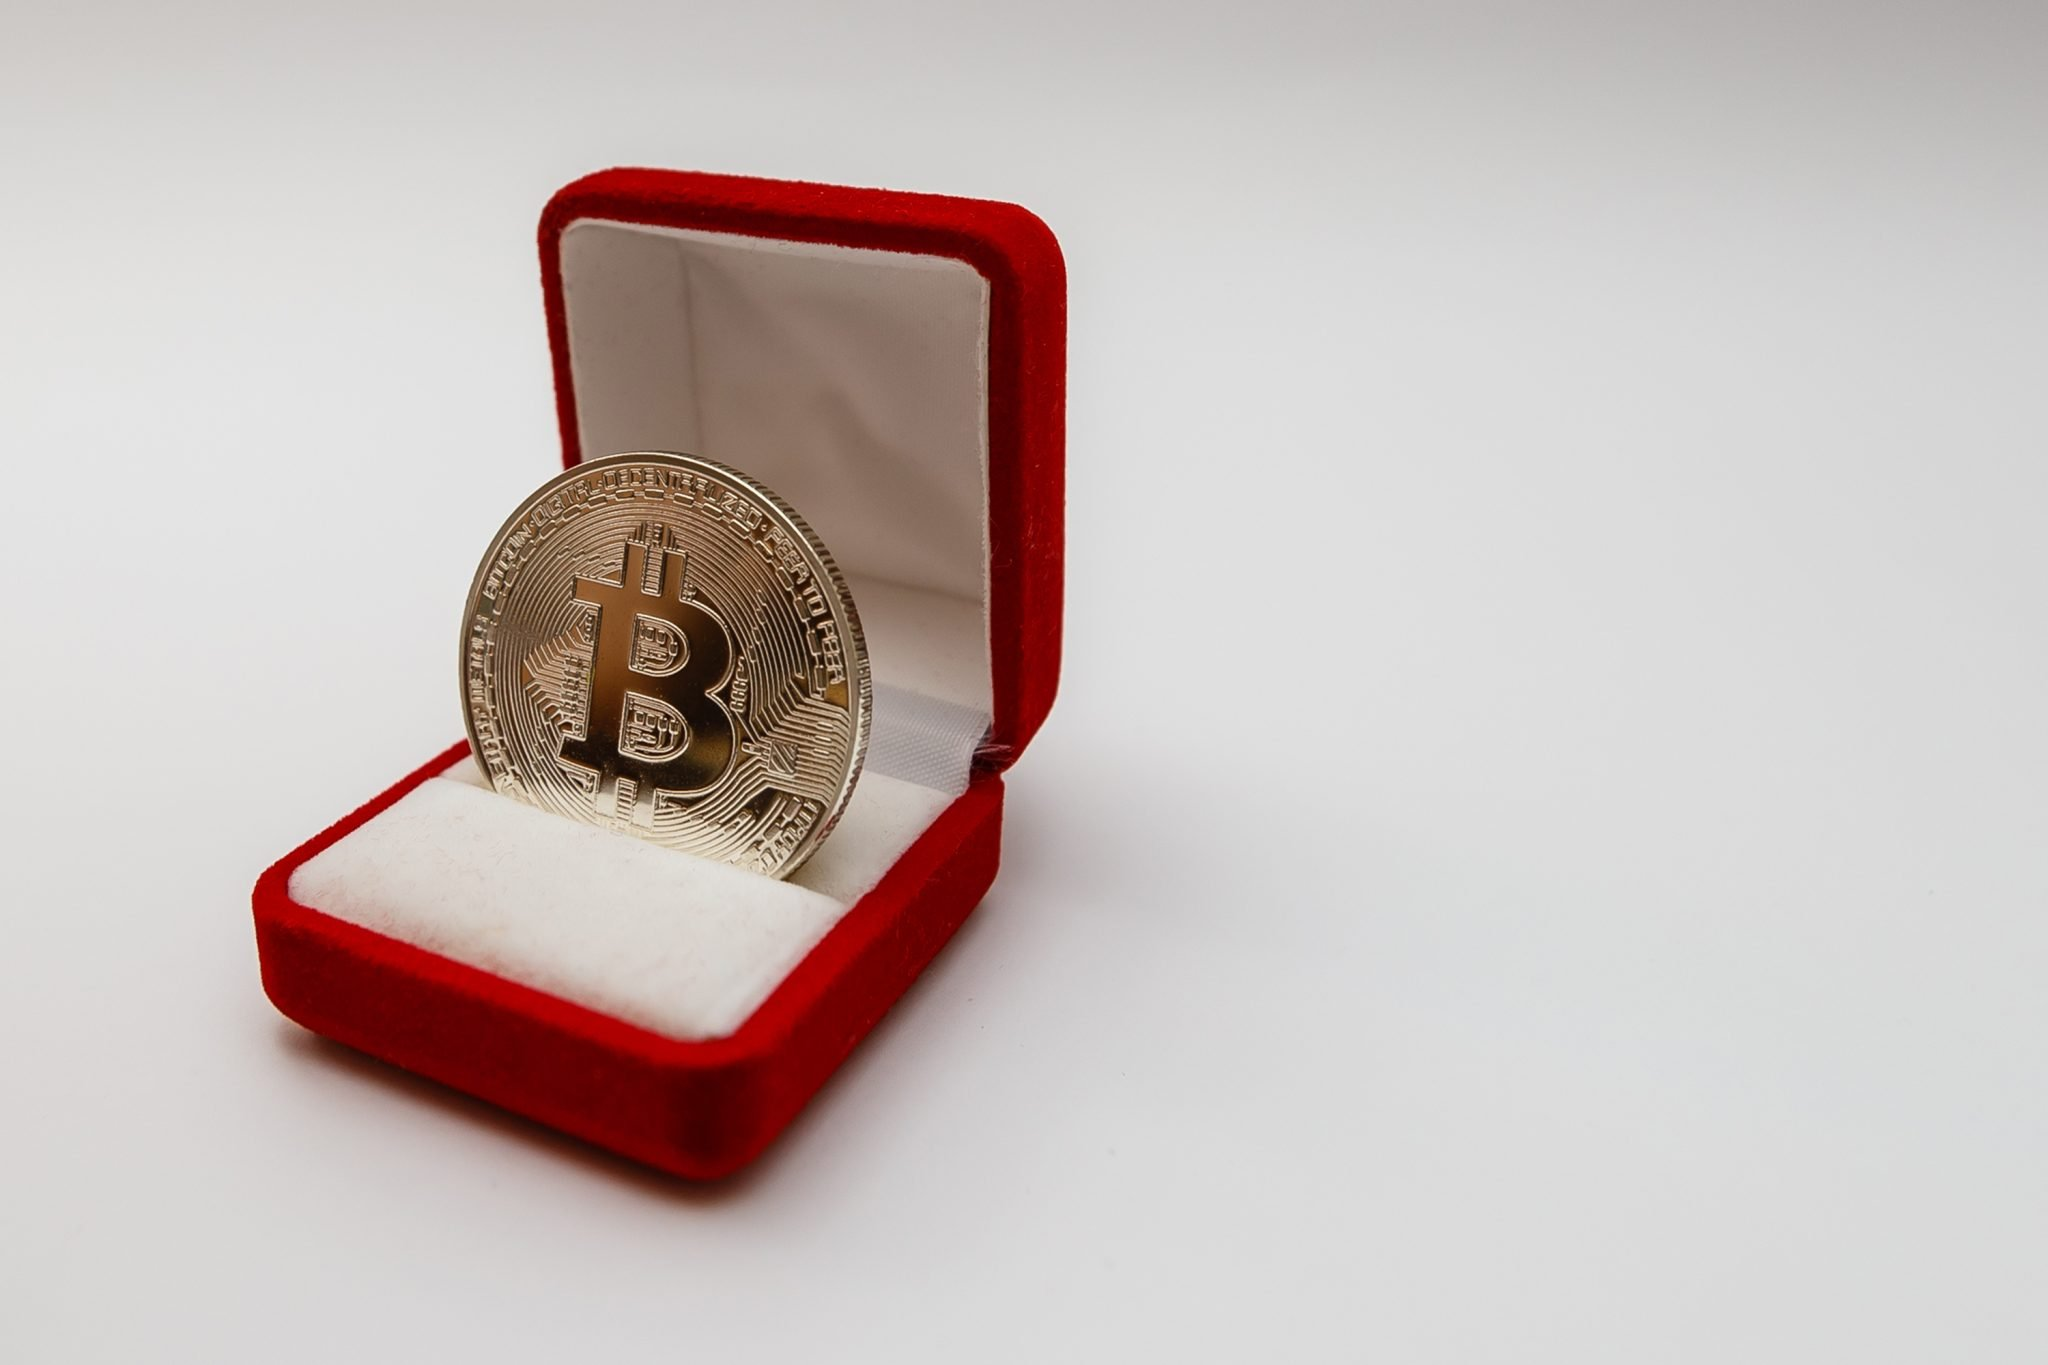 Coin bitcoin in a gift box for a ring or jewelry the concept of crypto currency, best gift concept